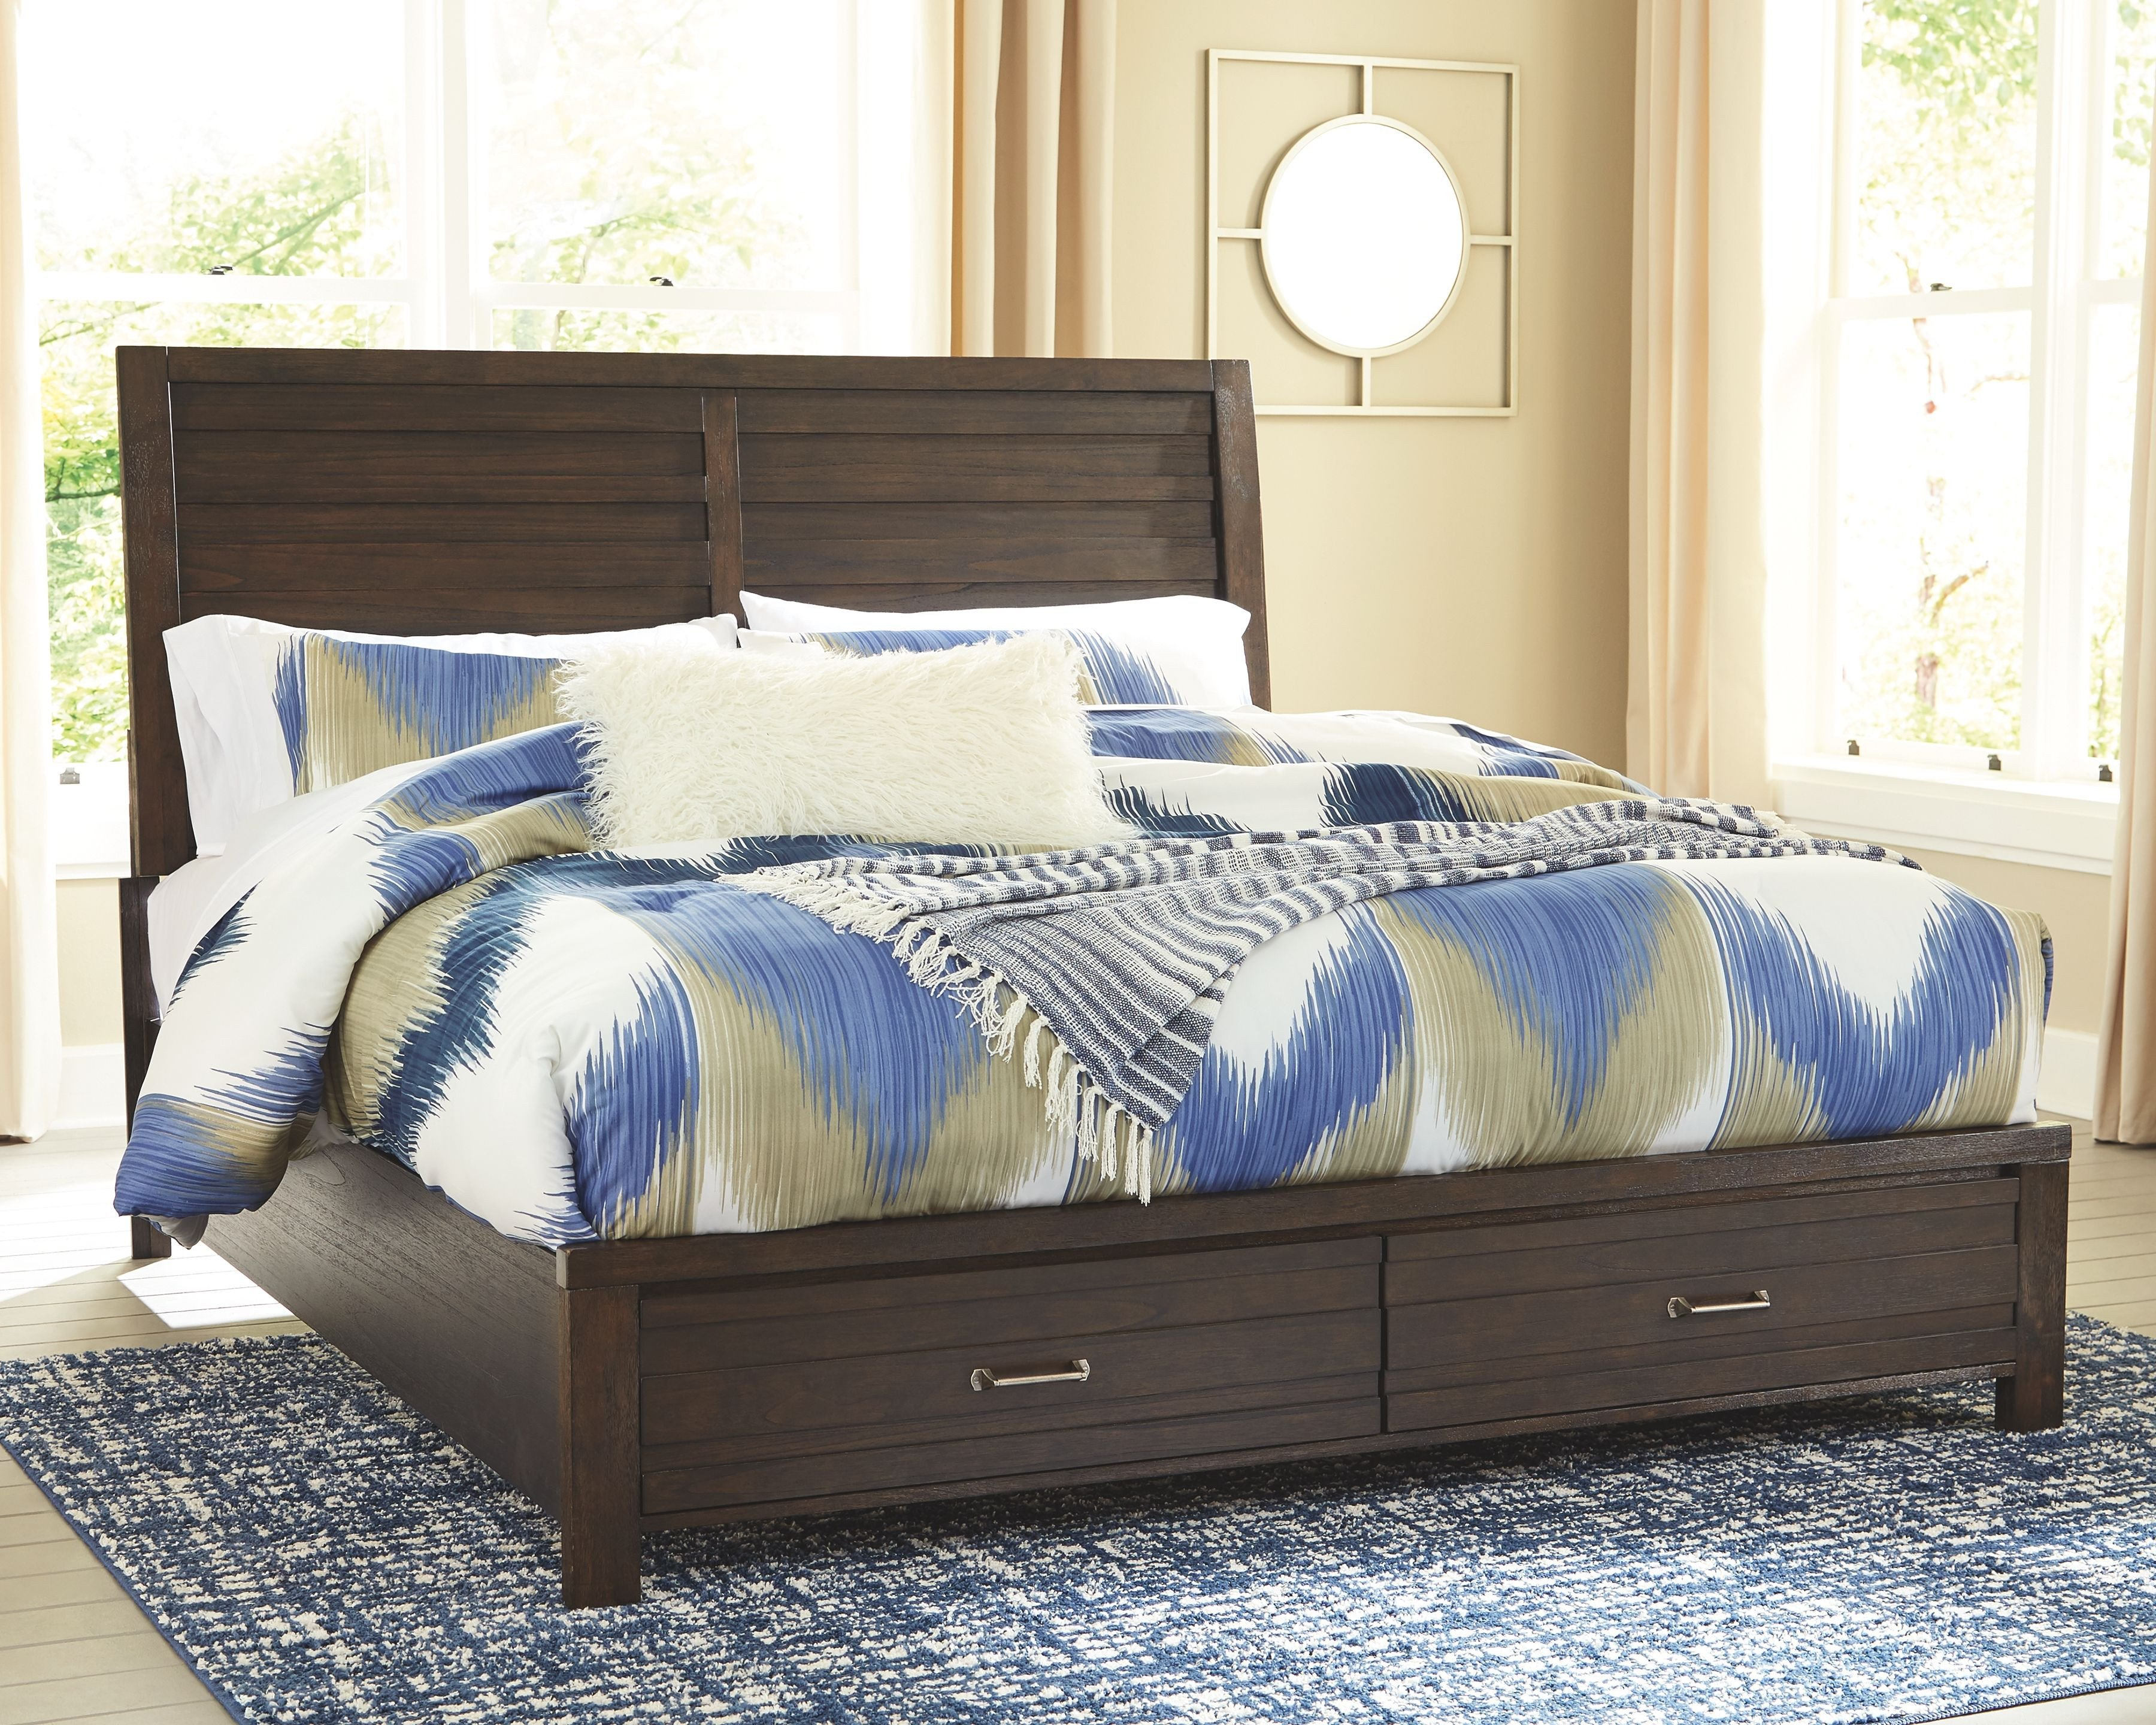 Ashley Home Store Bedroom Set New Darbry California King Panel Bed with Storage Brown